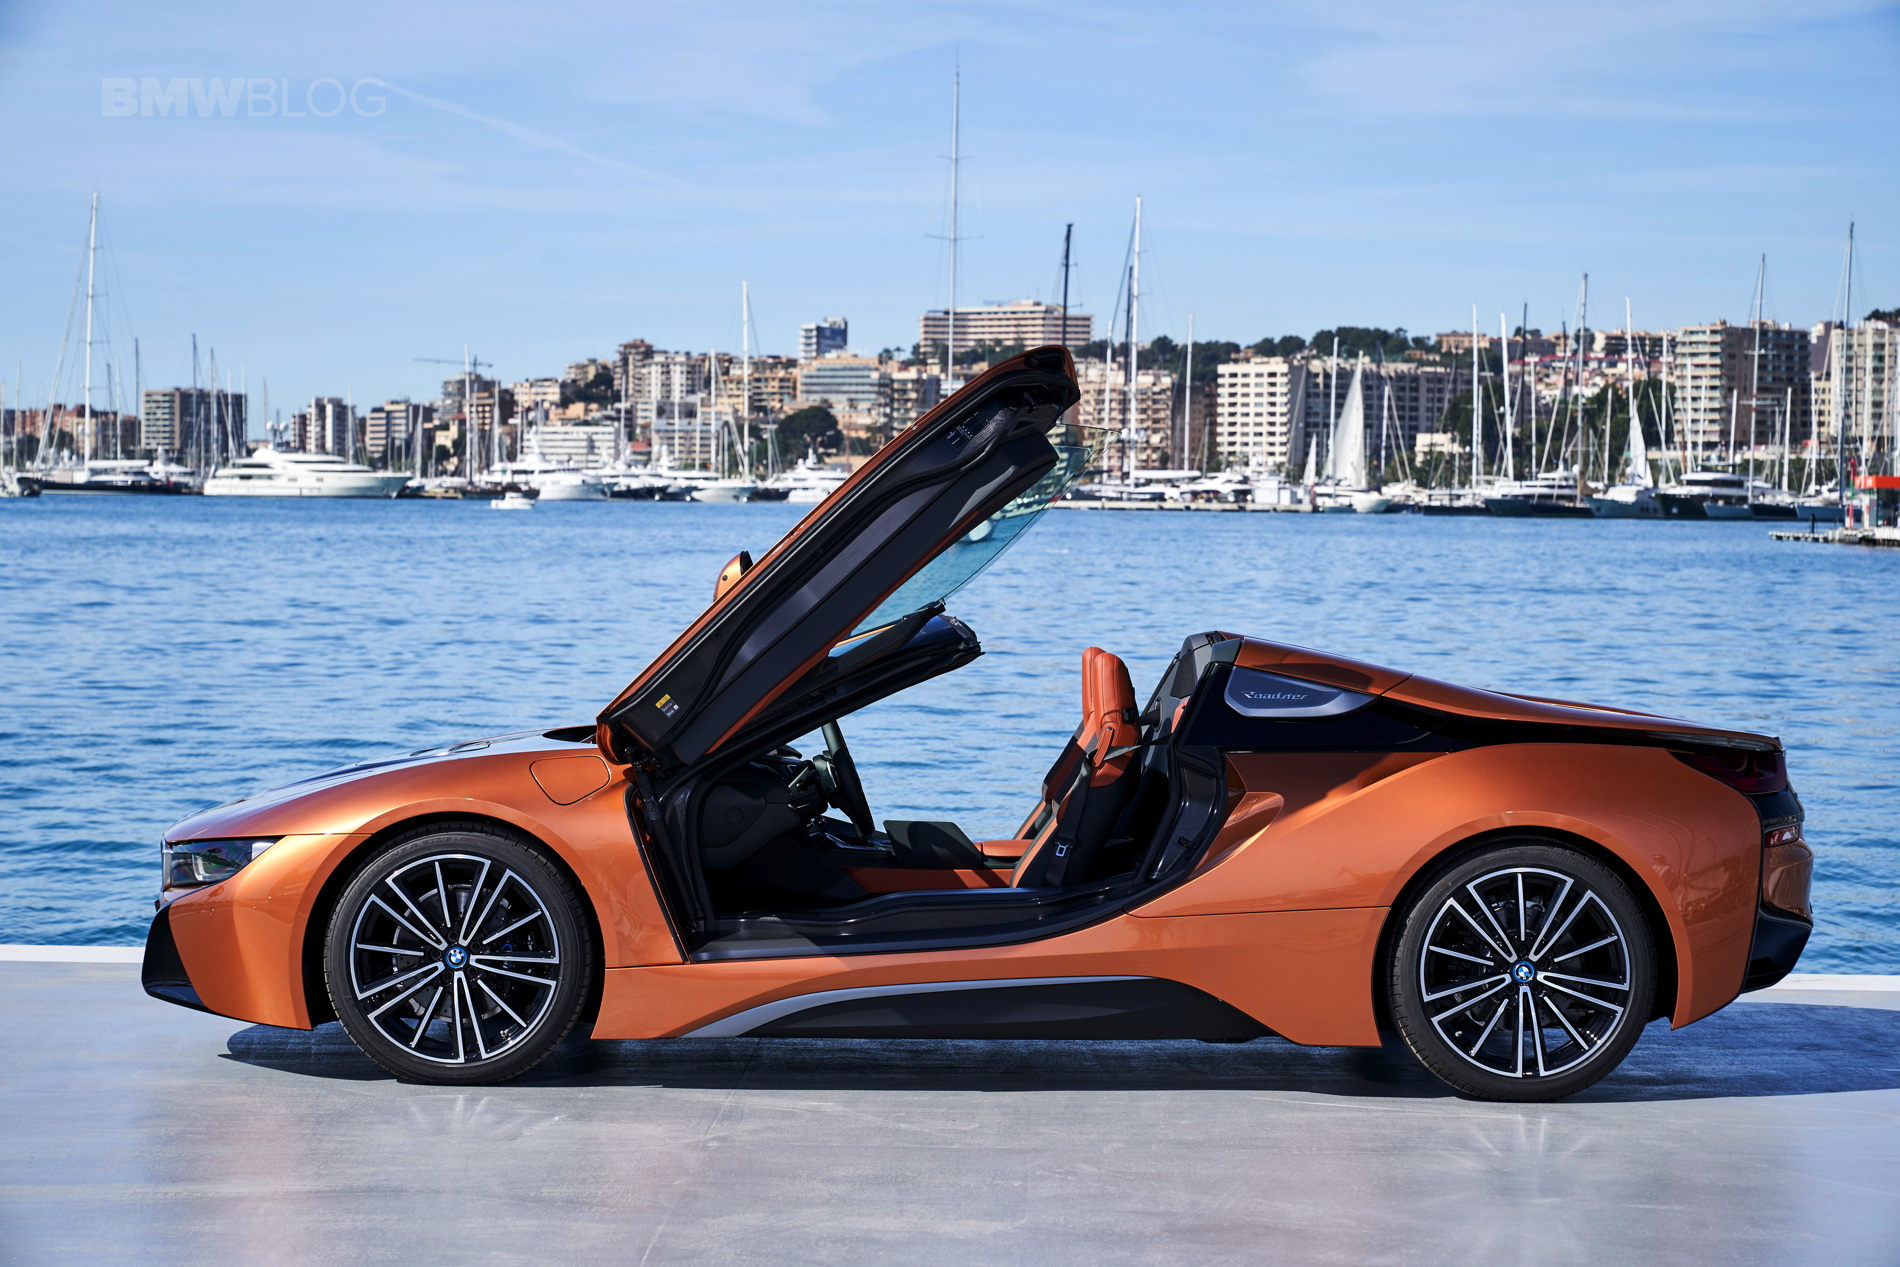 Limited Edition Bmw I8 Roadster Models Coming To Boost Sales